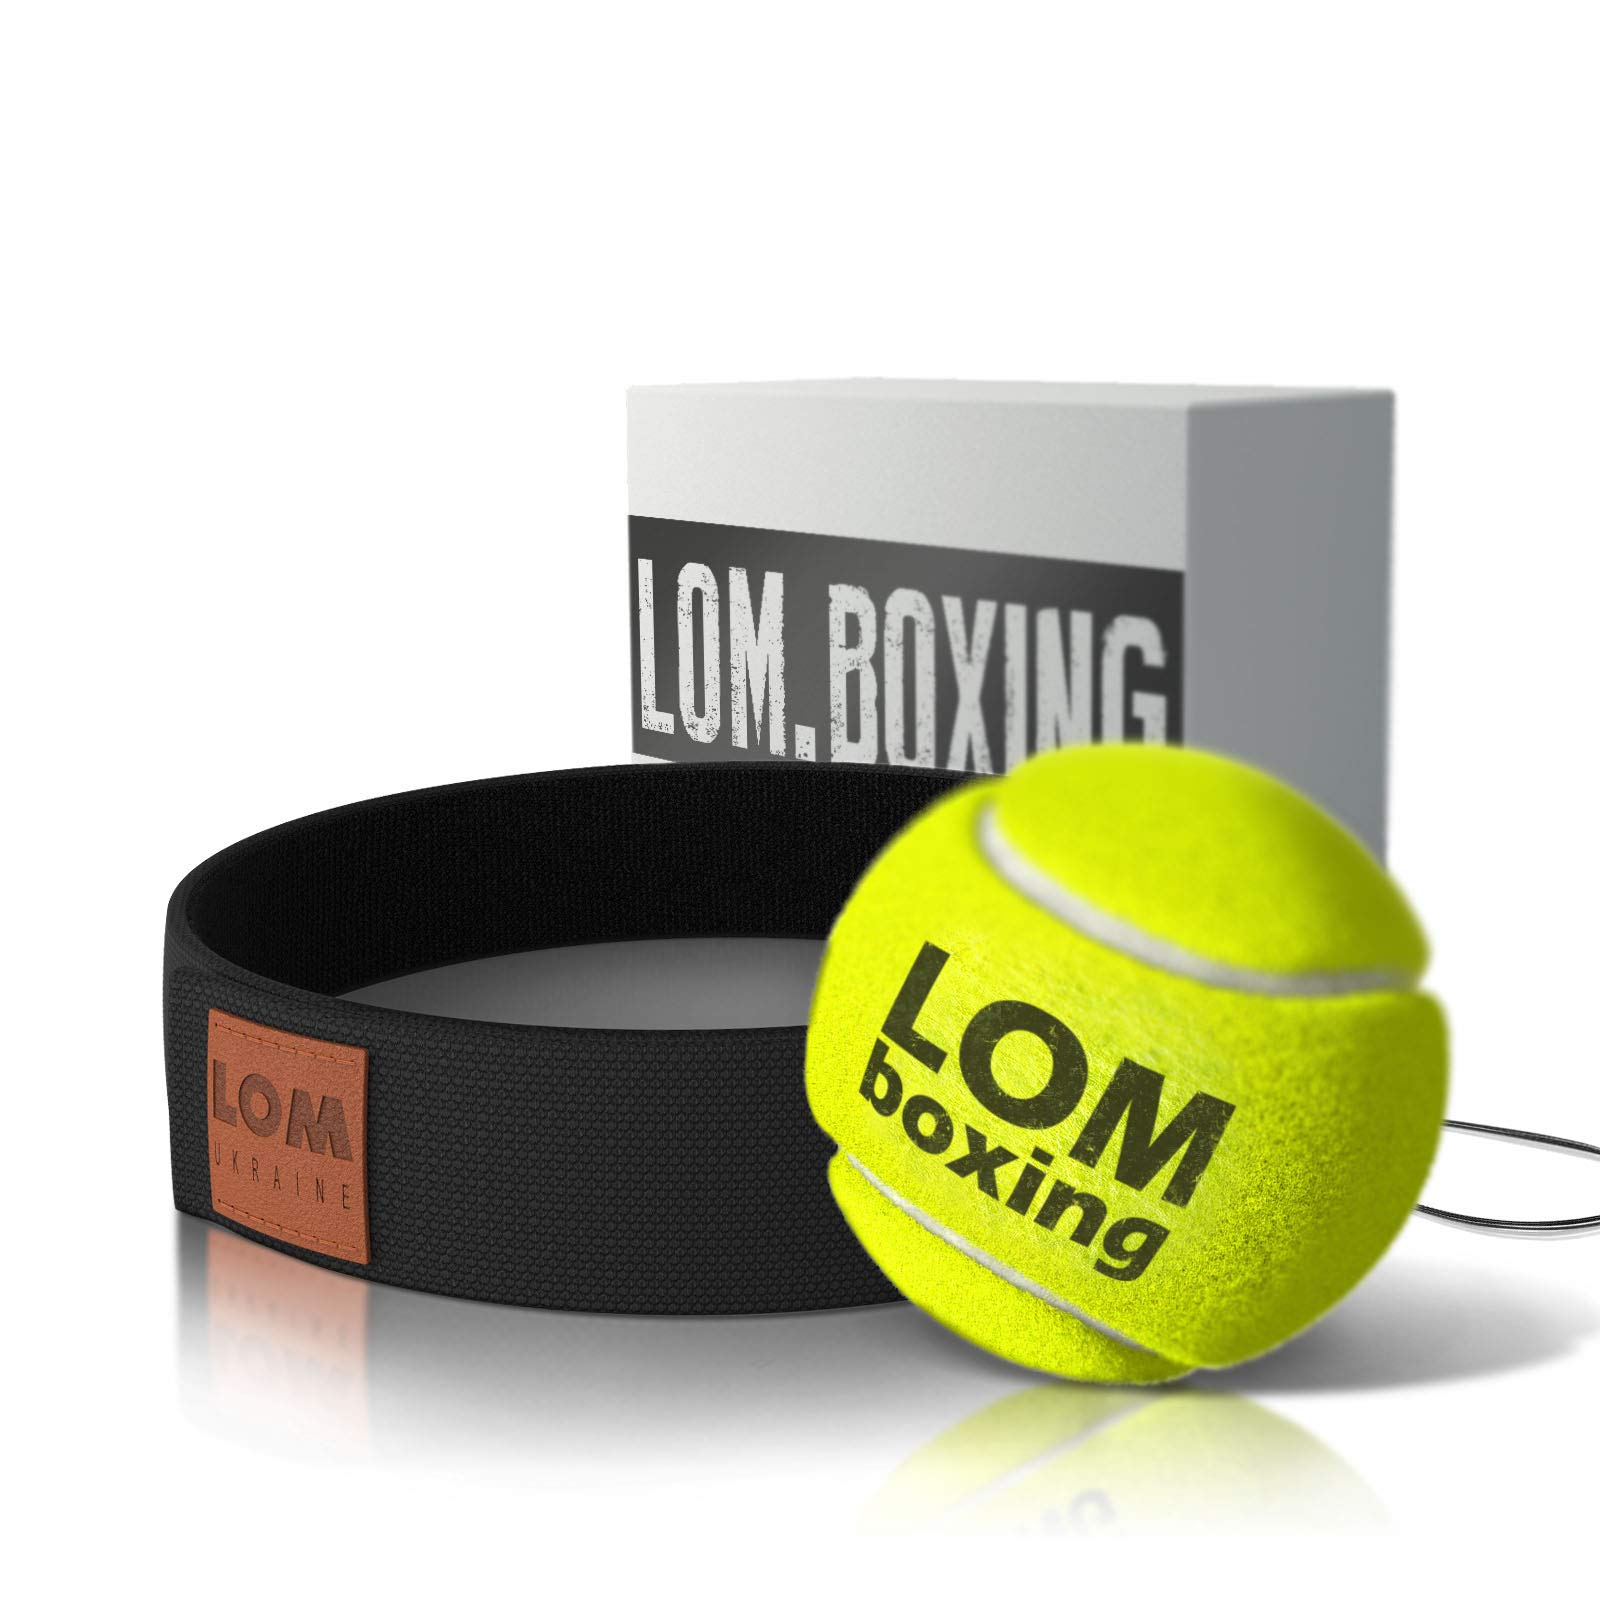 LOM Fight Ball Reflex, Boxing Ball, Softer Than Rubber Ball, Boxing Equipment, Trainer for Workout and Fitness, Boxing Headband with String and Boxing Tennis Ball for speed punch and for All Ages by LOM